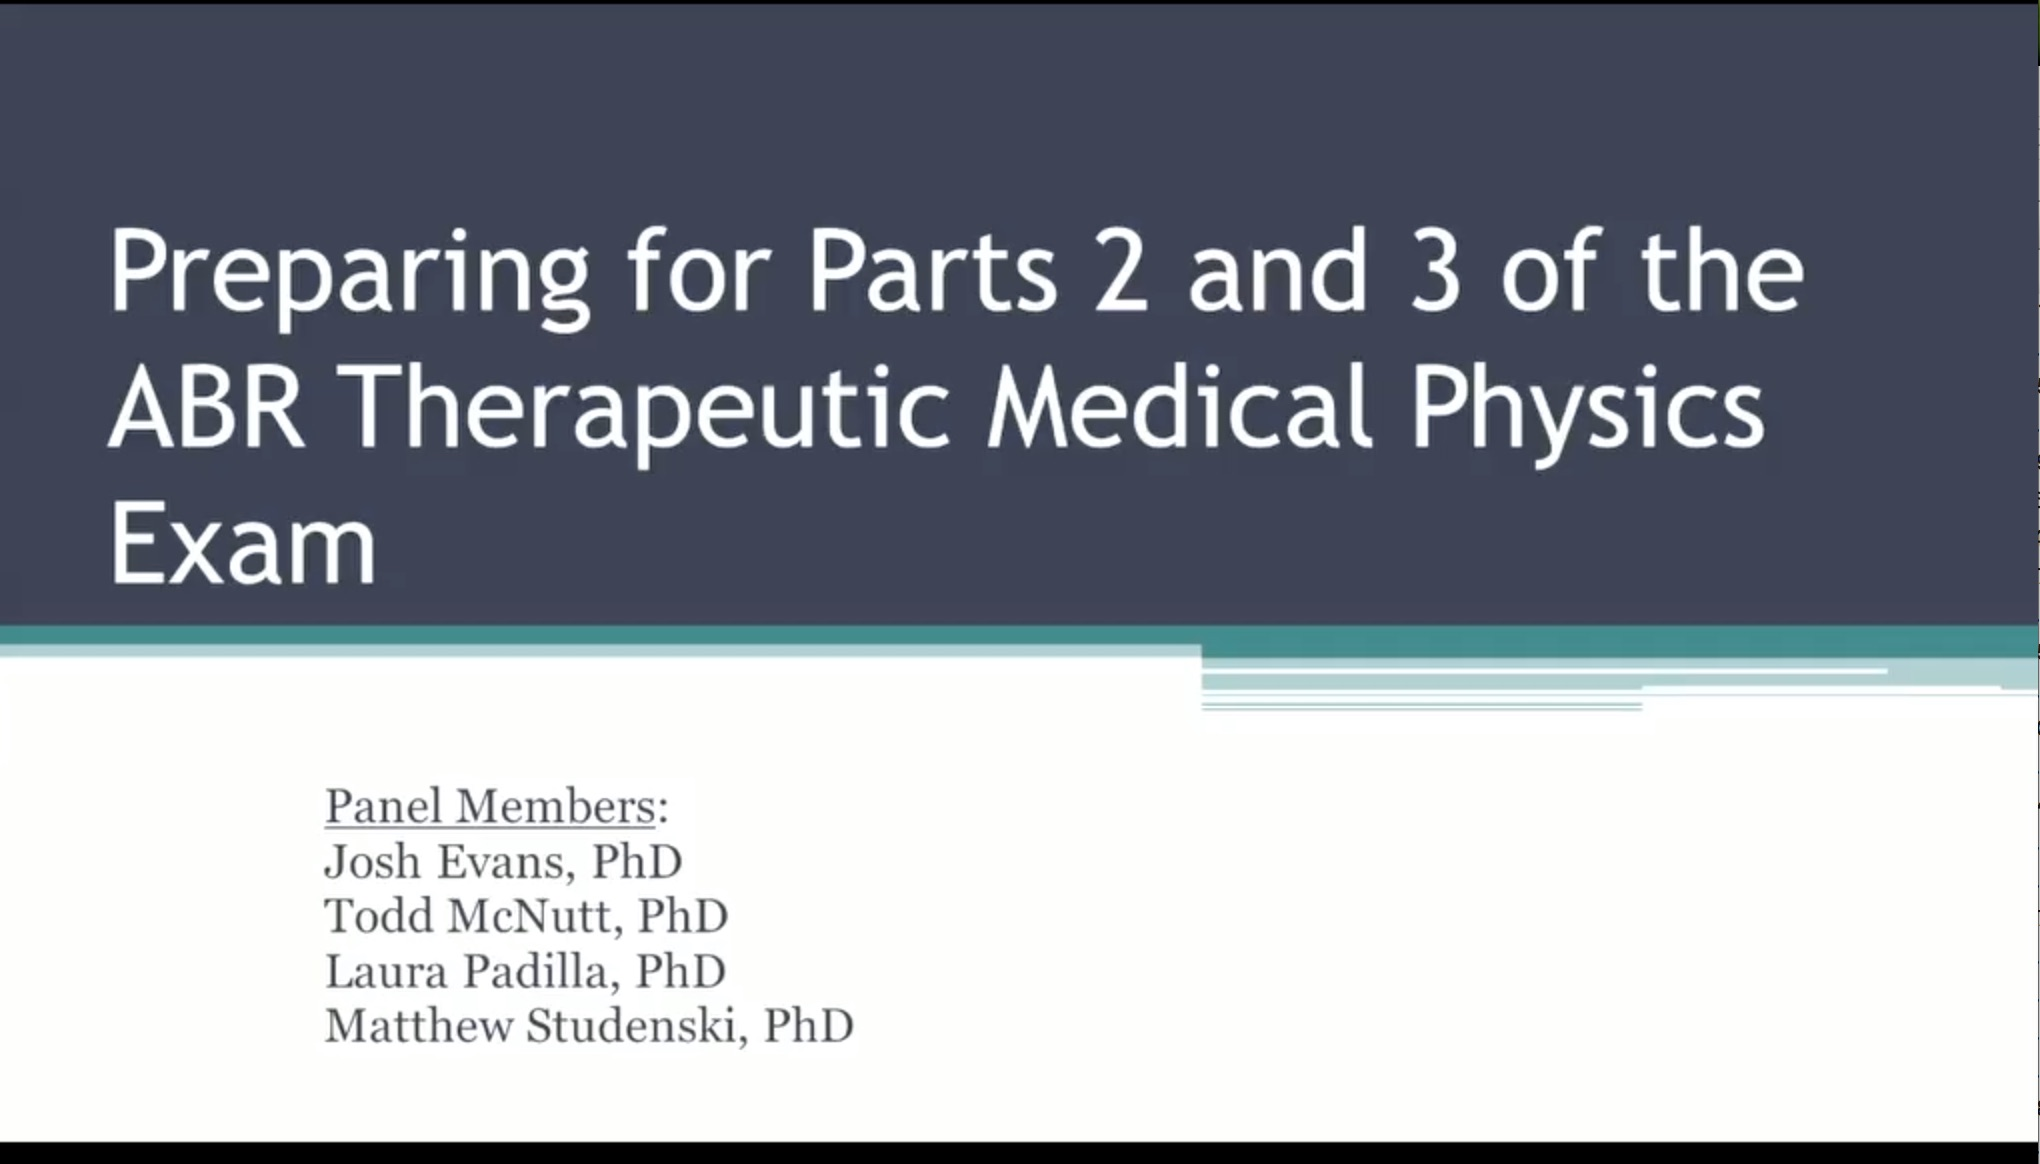 AAPM VL-PANEL DISCUSSION: Preparing for Parts 2 and 3 of the ABR